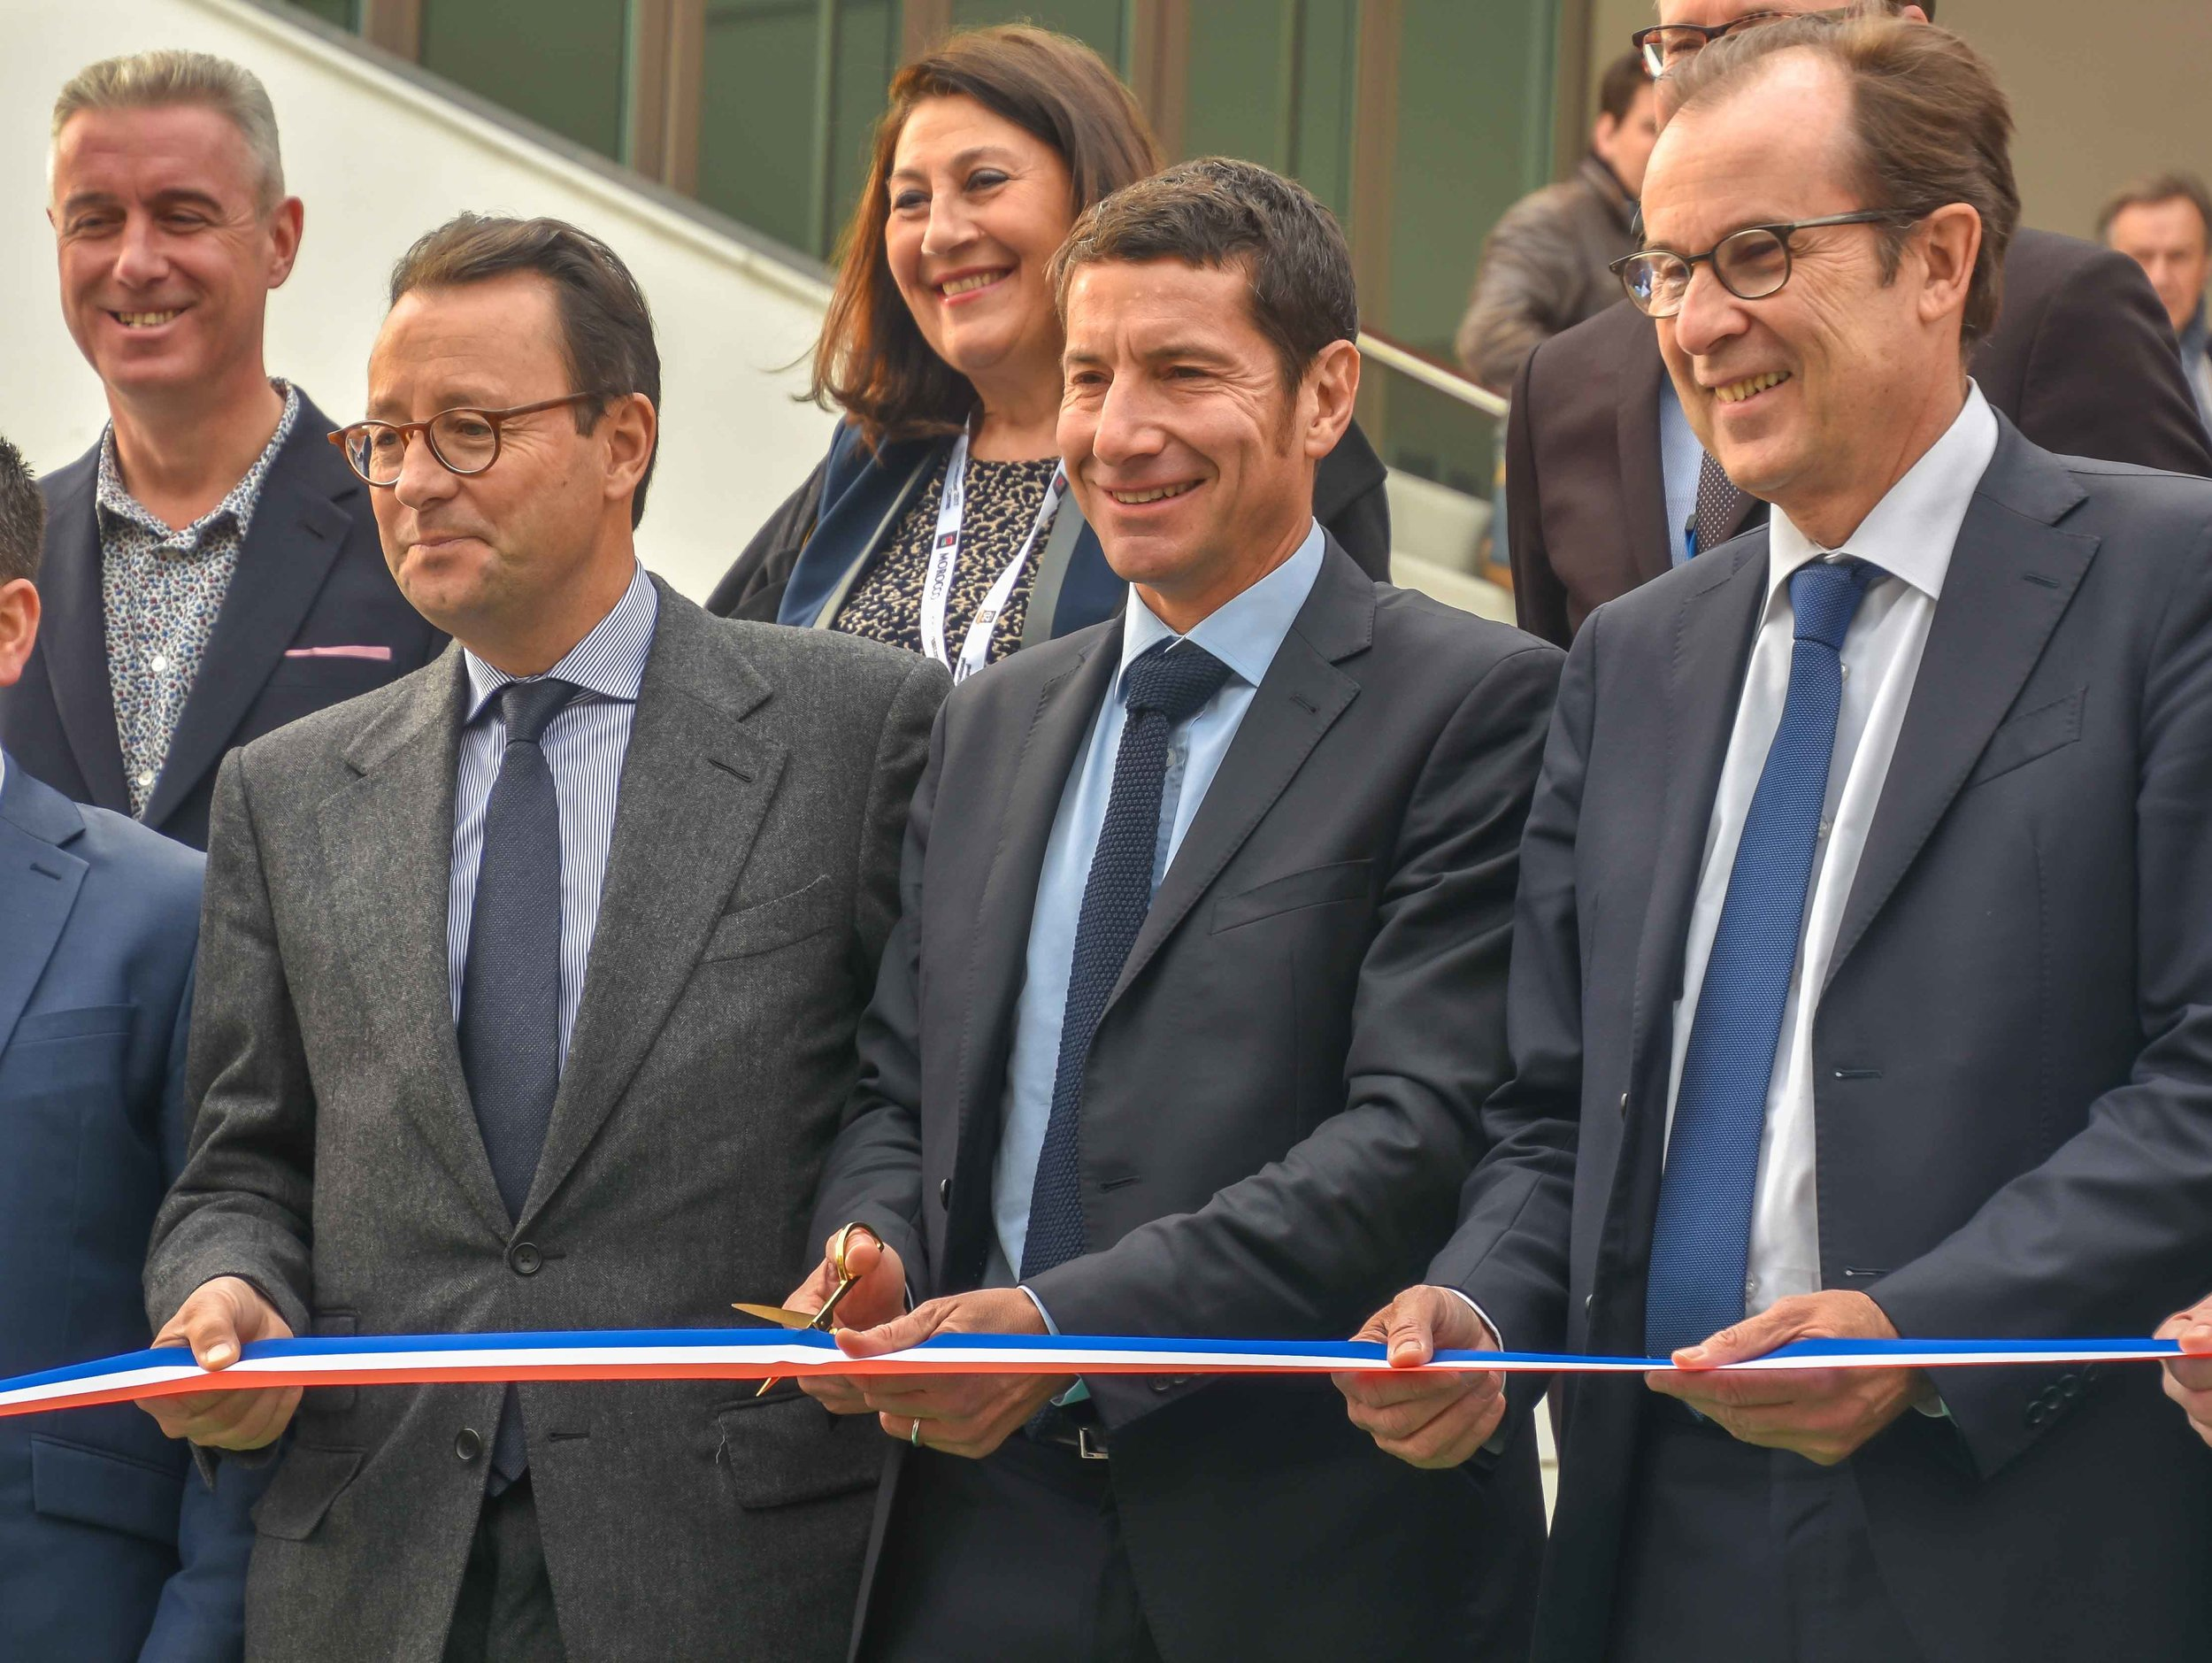 The Mayor of Cannes, David Lisnard, kicks things off with a ribbon cutting.